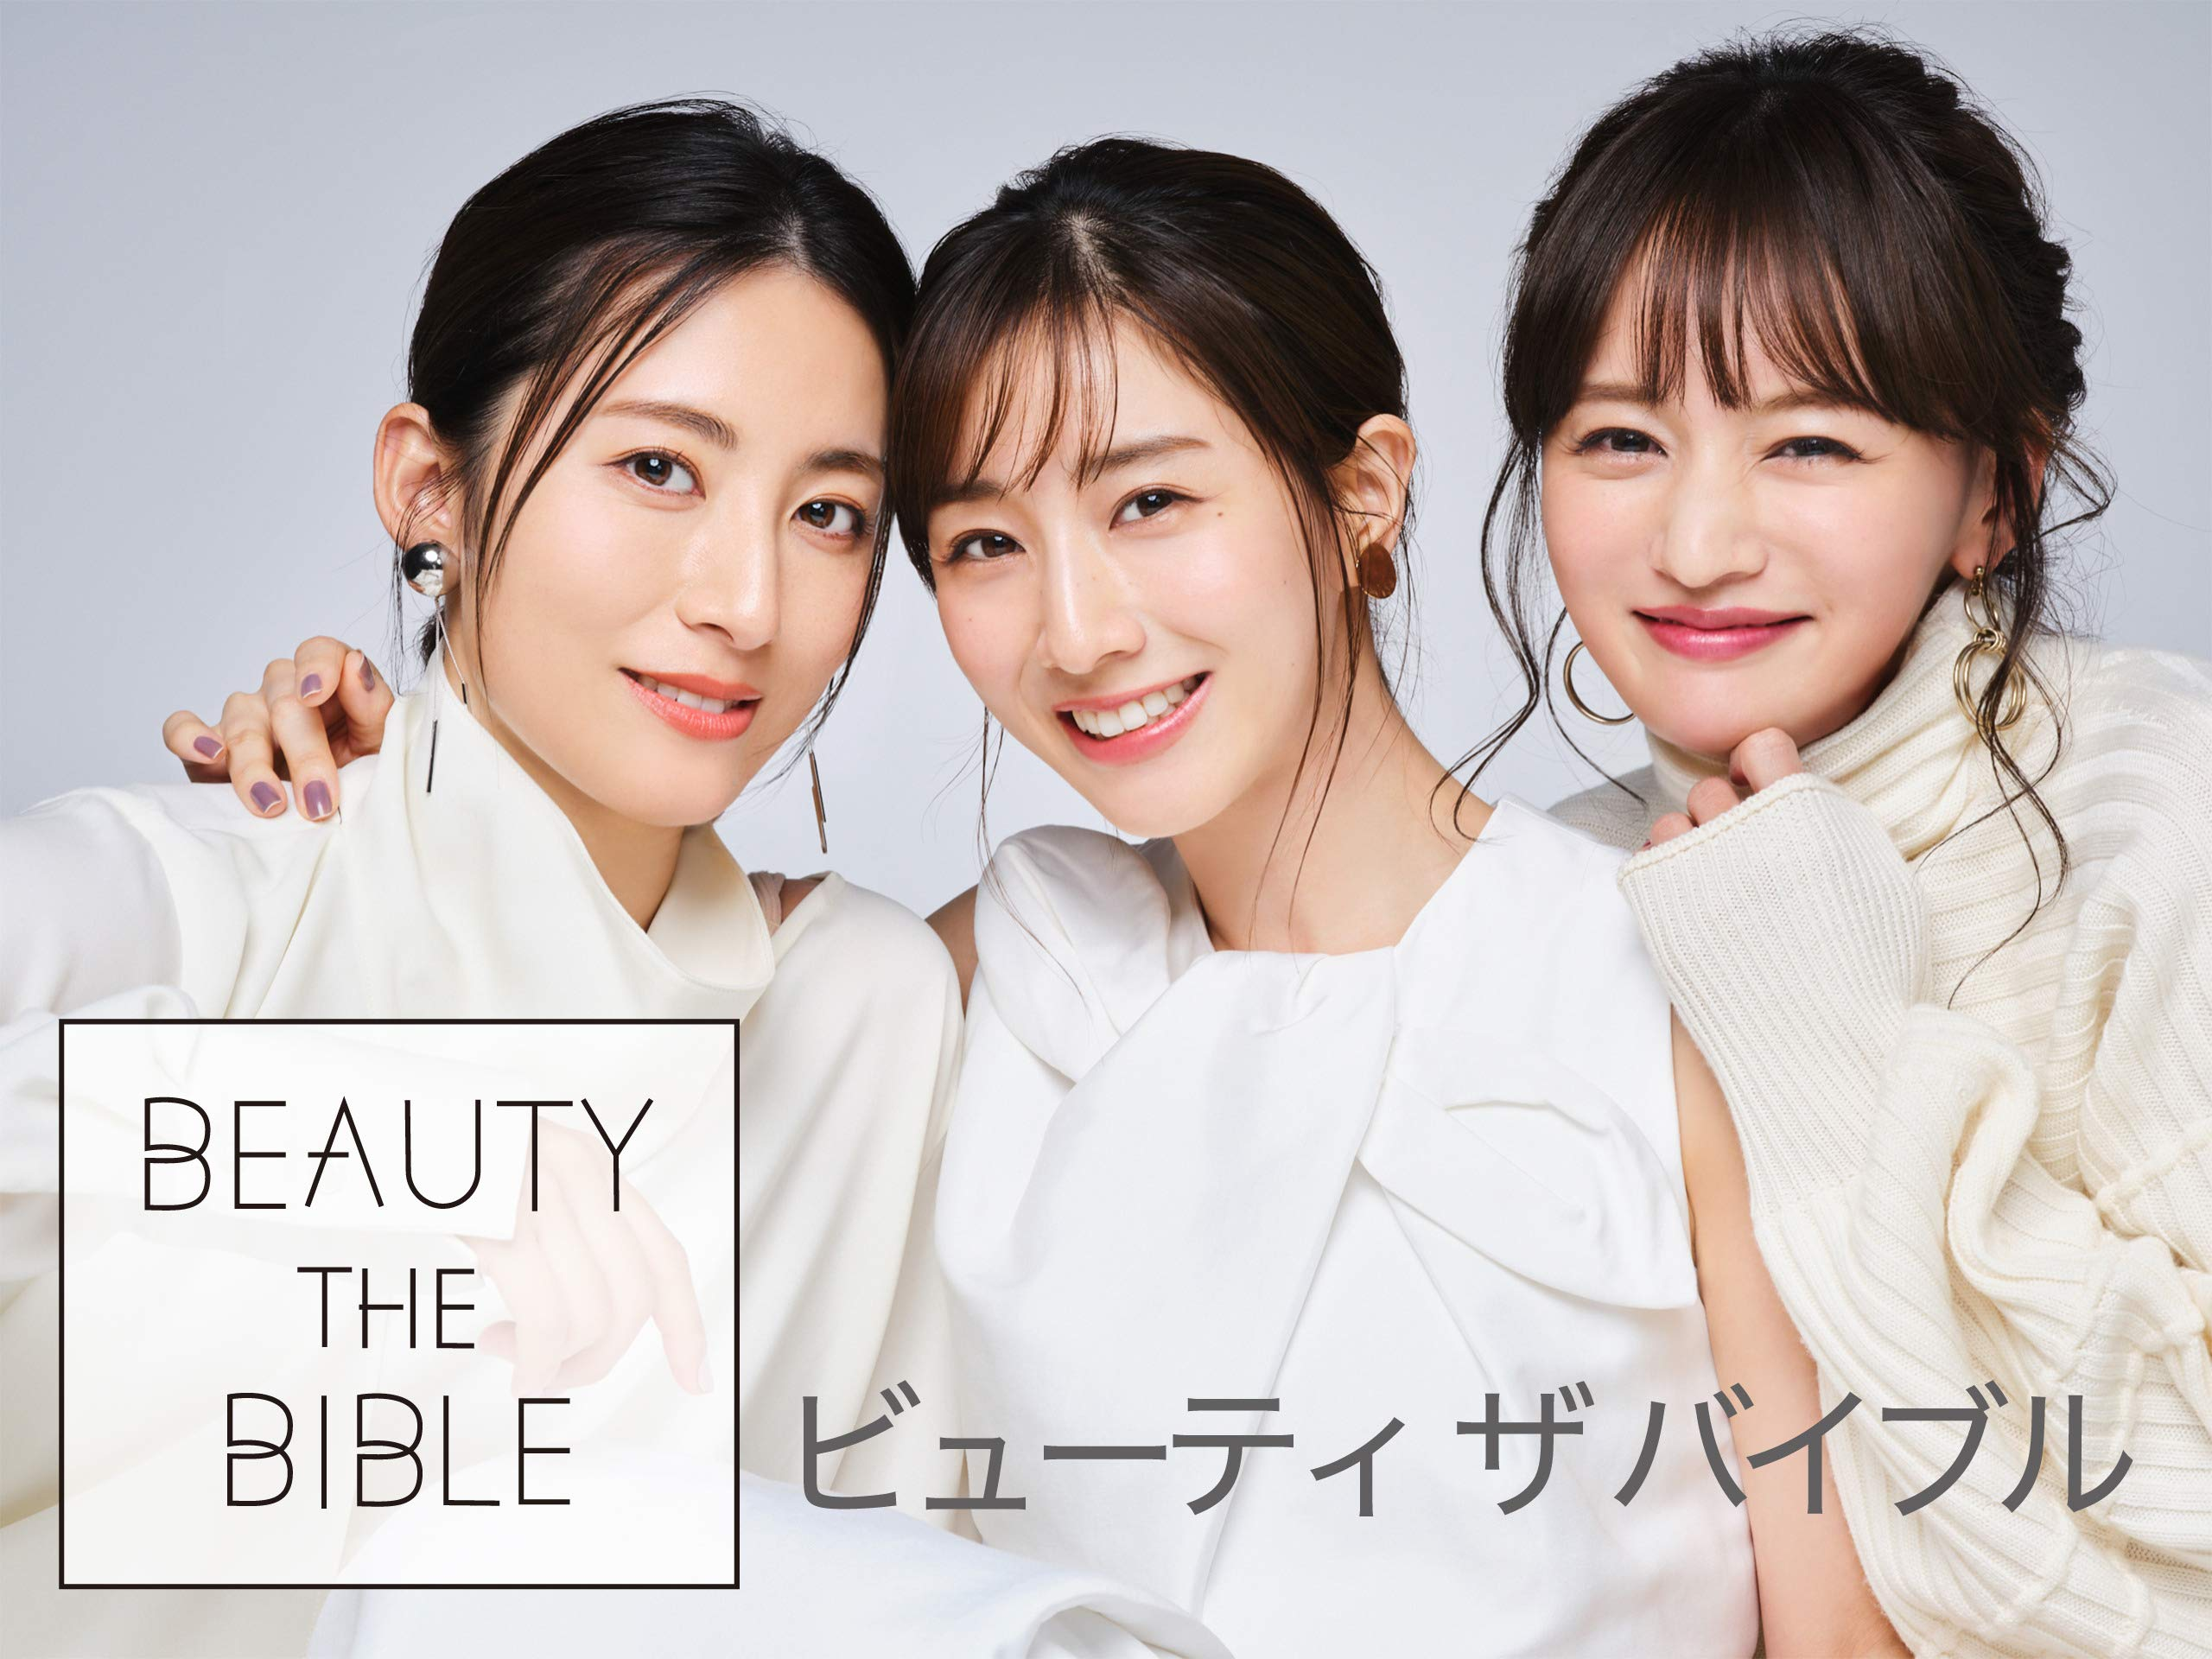 Amazon.co.jp: BEAUTY THE BIBLE シーズン1を観る | Prime Video